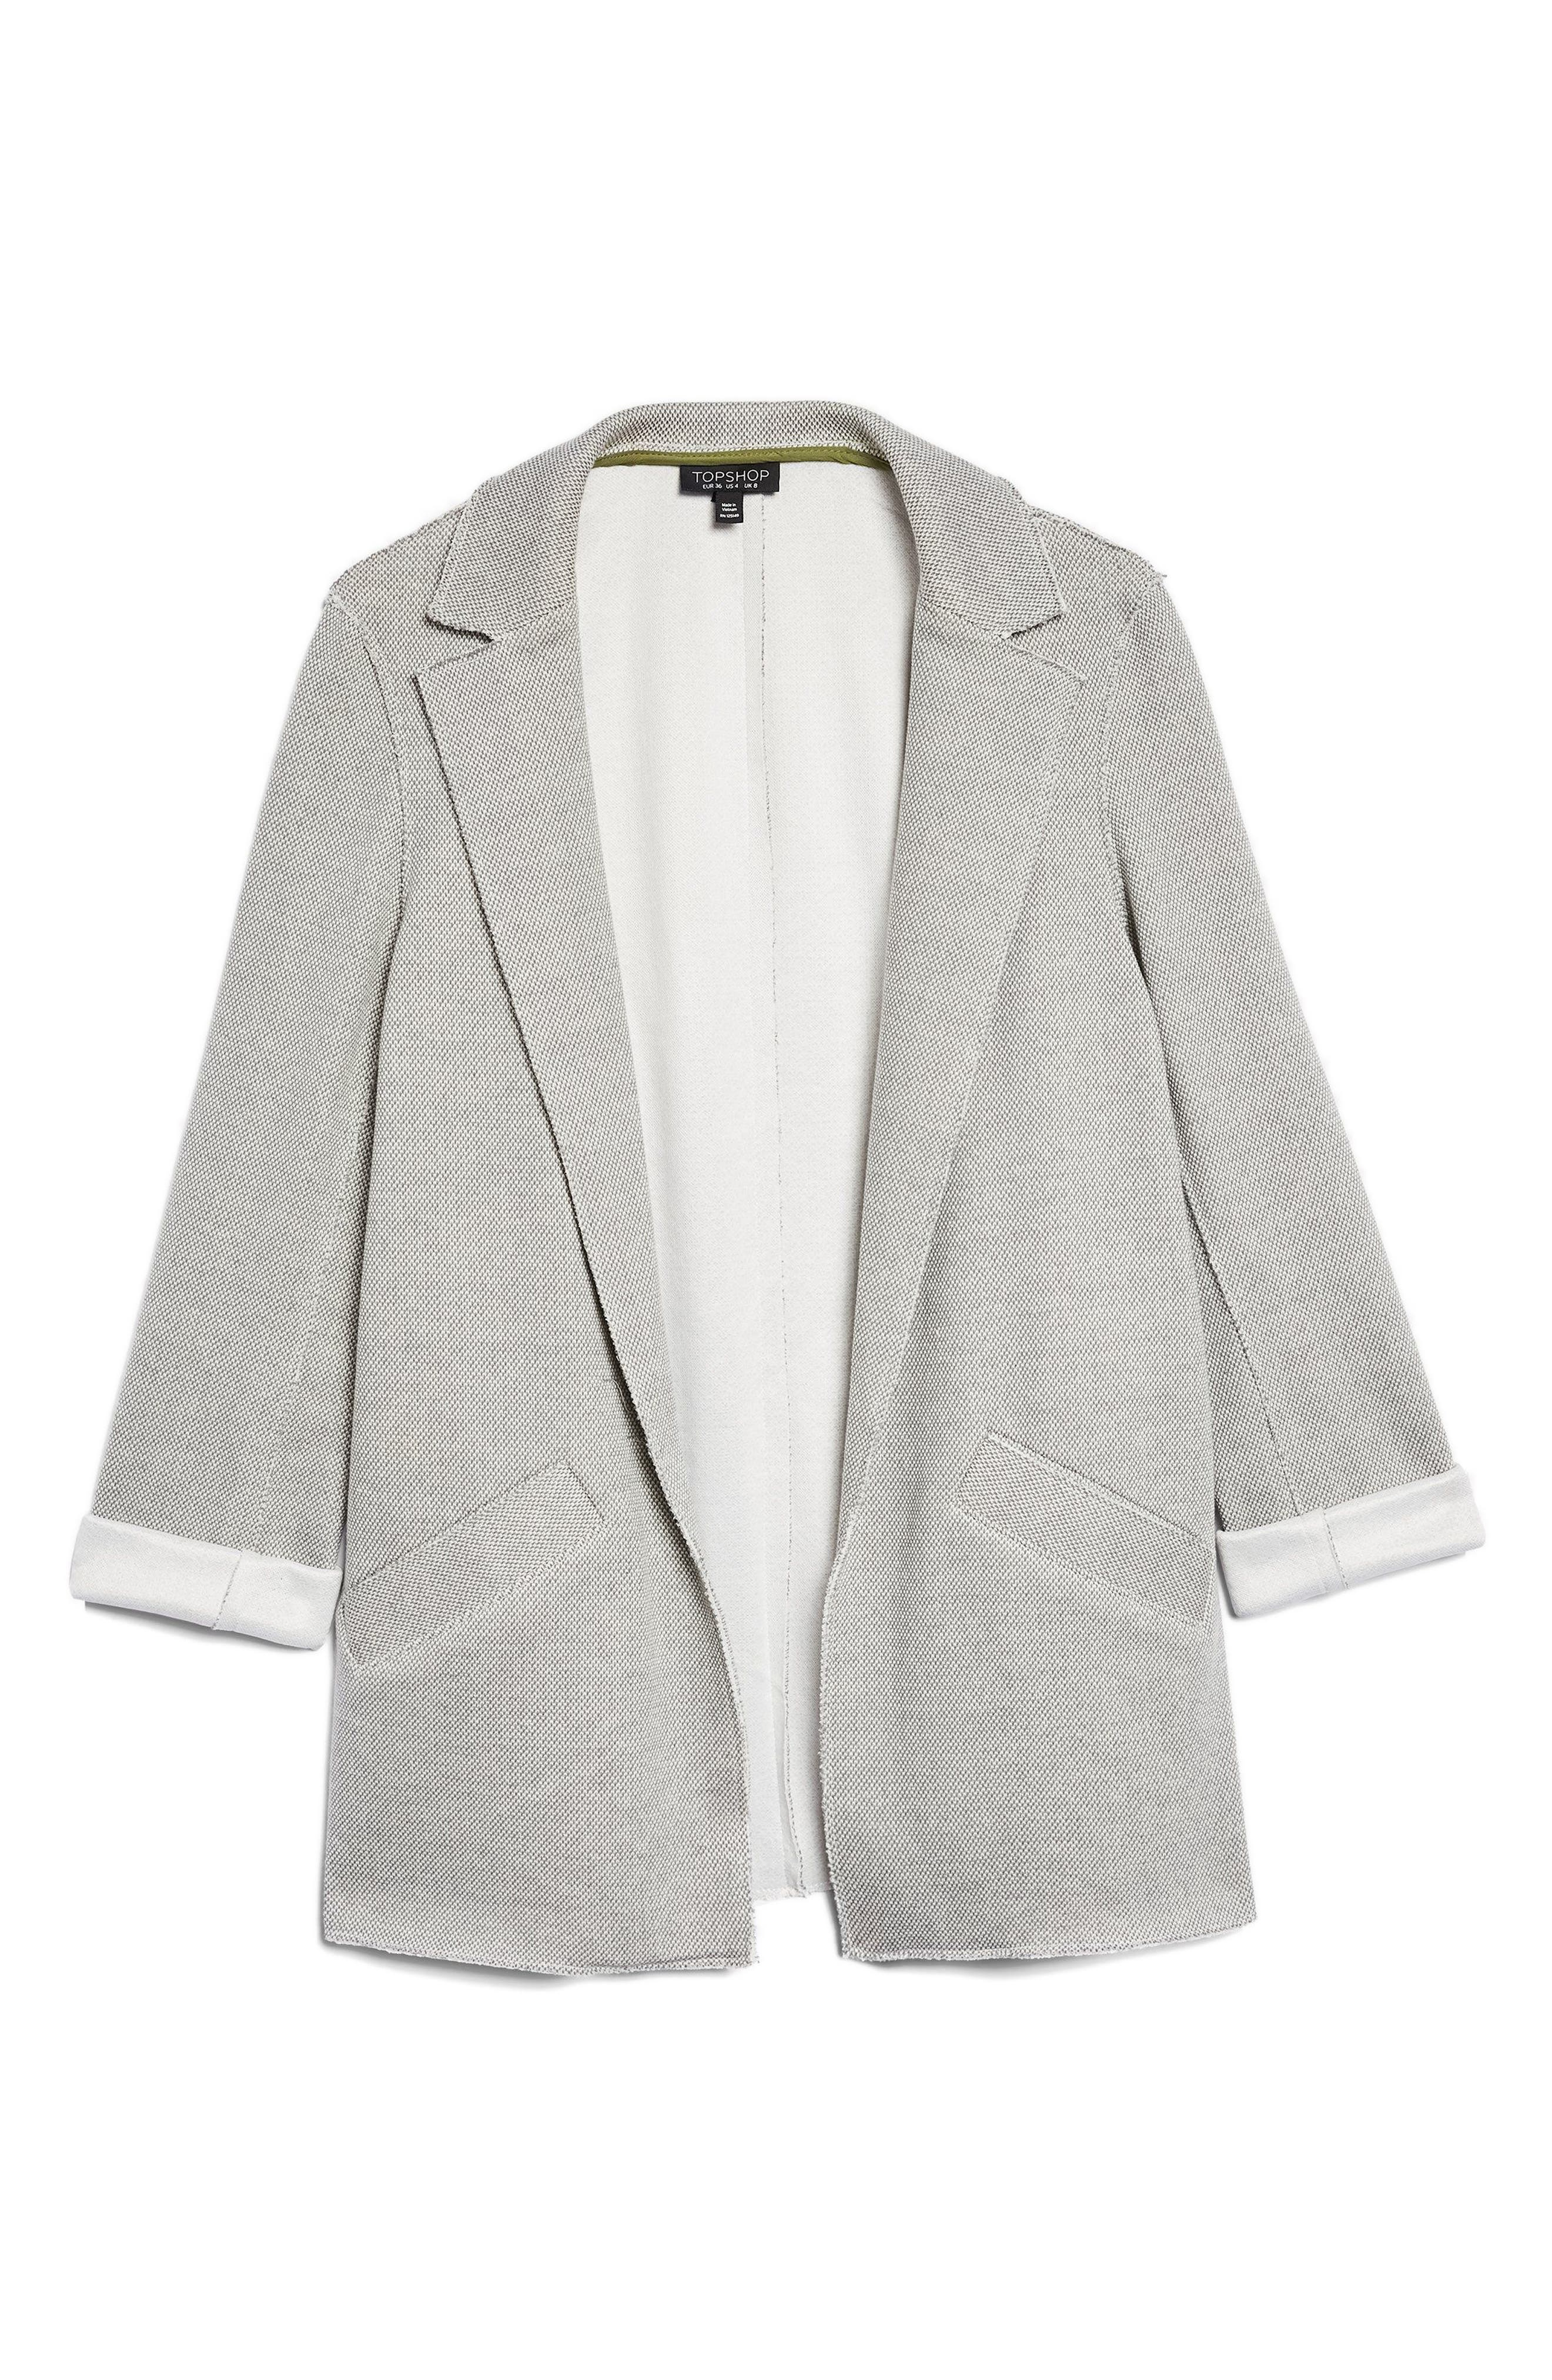 Deconcrusted Jersey Blazer,                             Alternate thumbnail 5, color,                             Grey